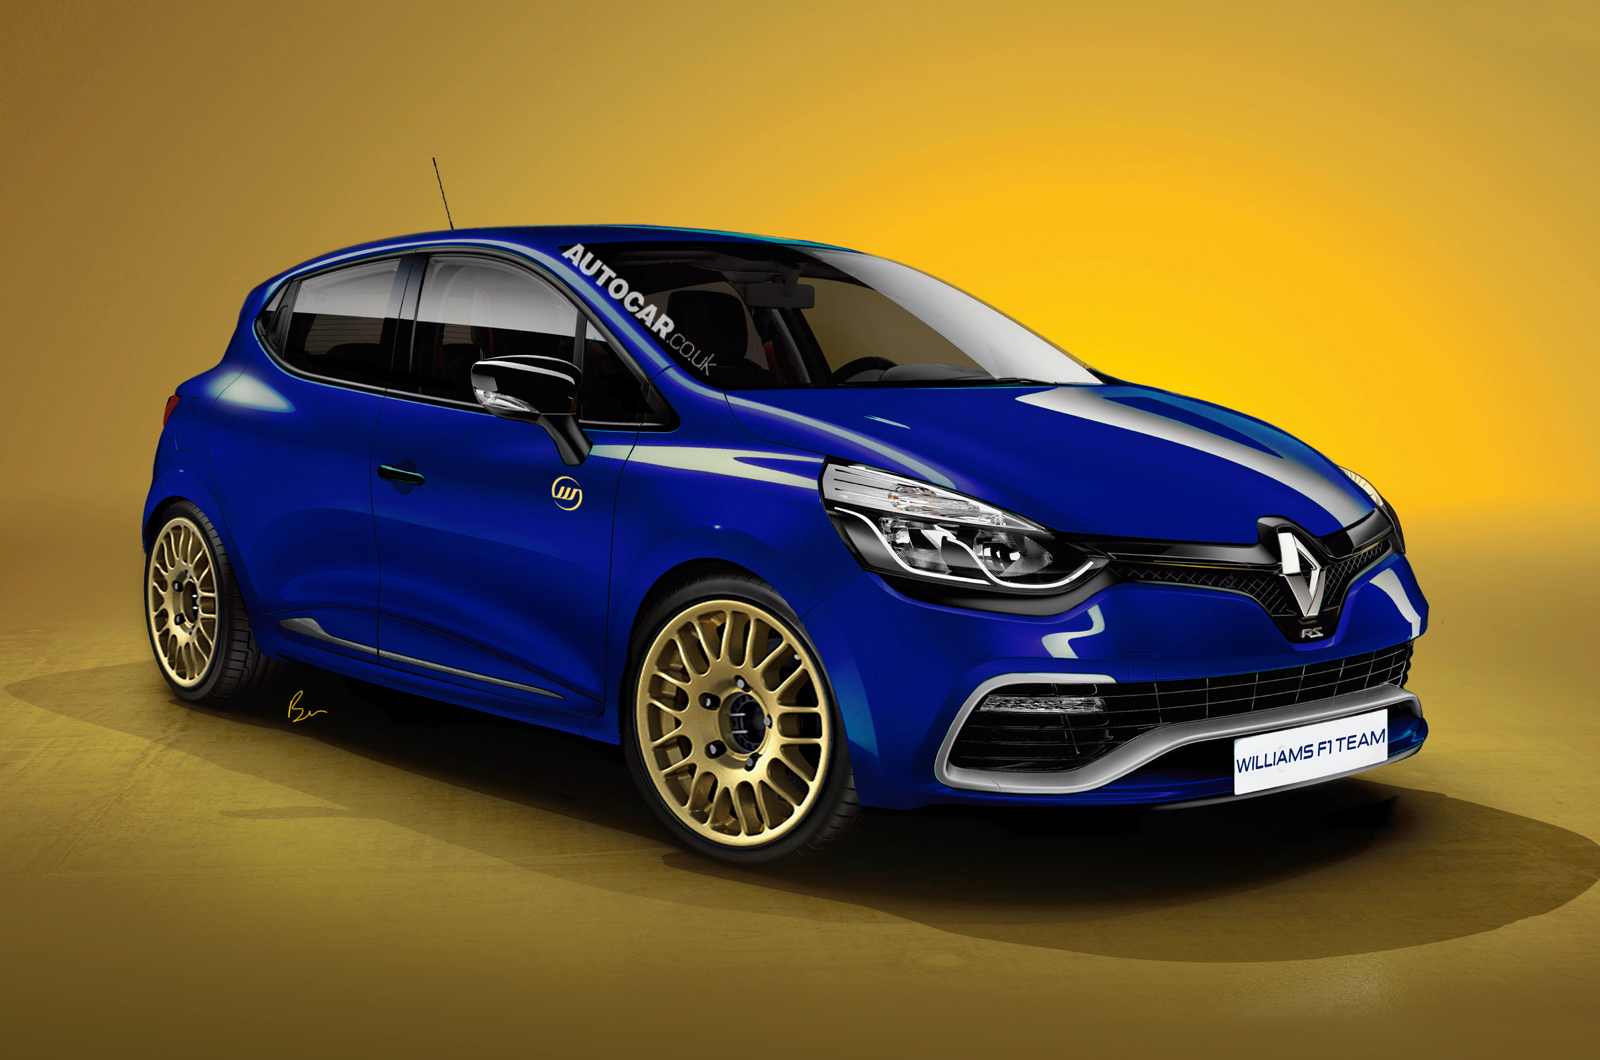 Renault Clio Williams final BSY High Resolution Image Wallpapers Desktop Download